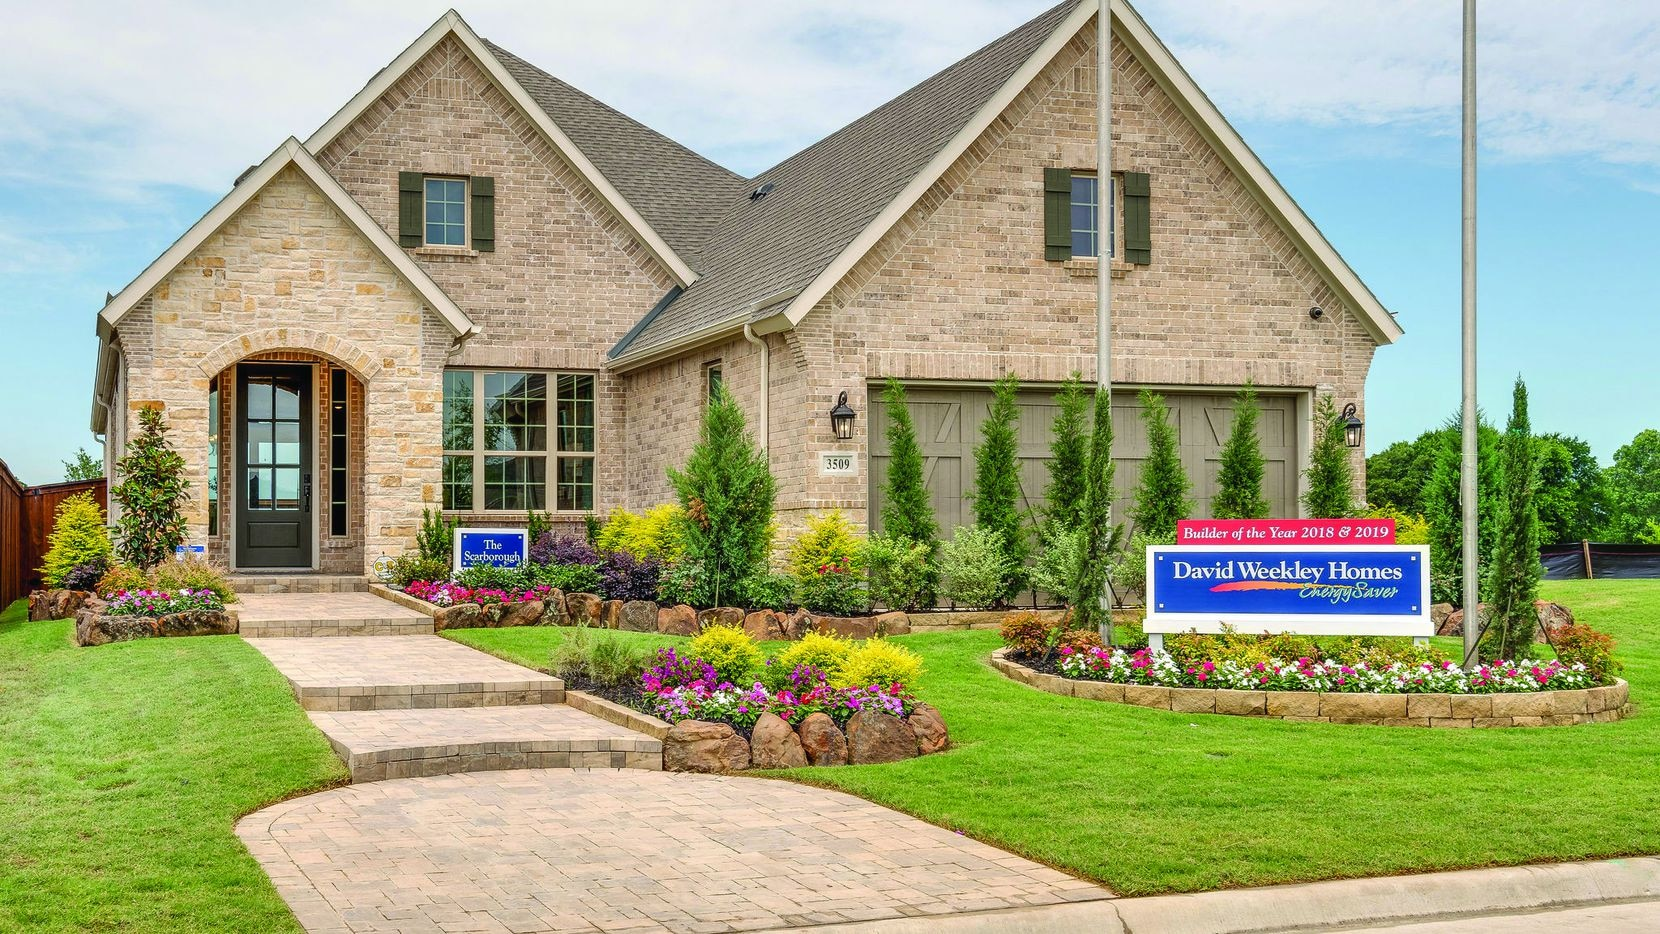 David Weekley homes in Prairie Oaks are priced from the high $200s.